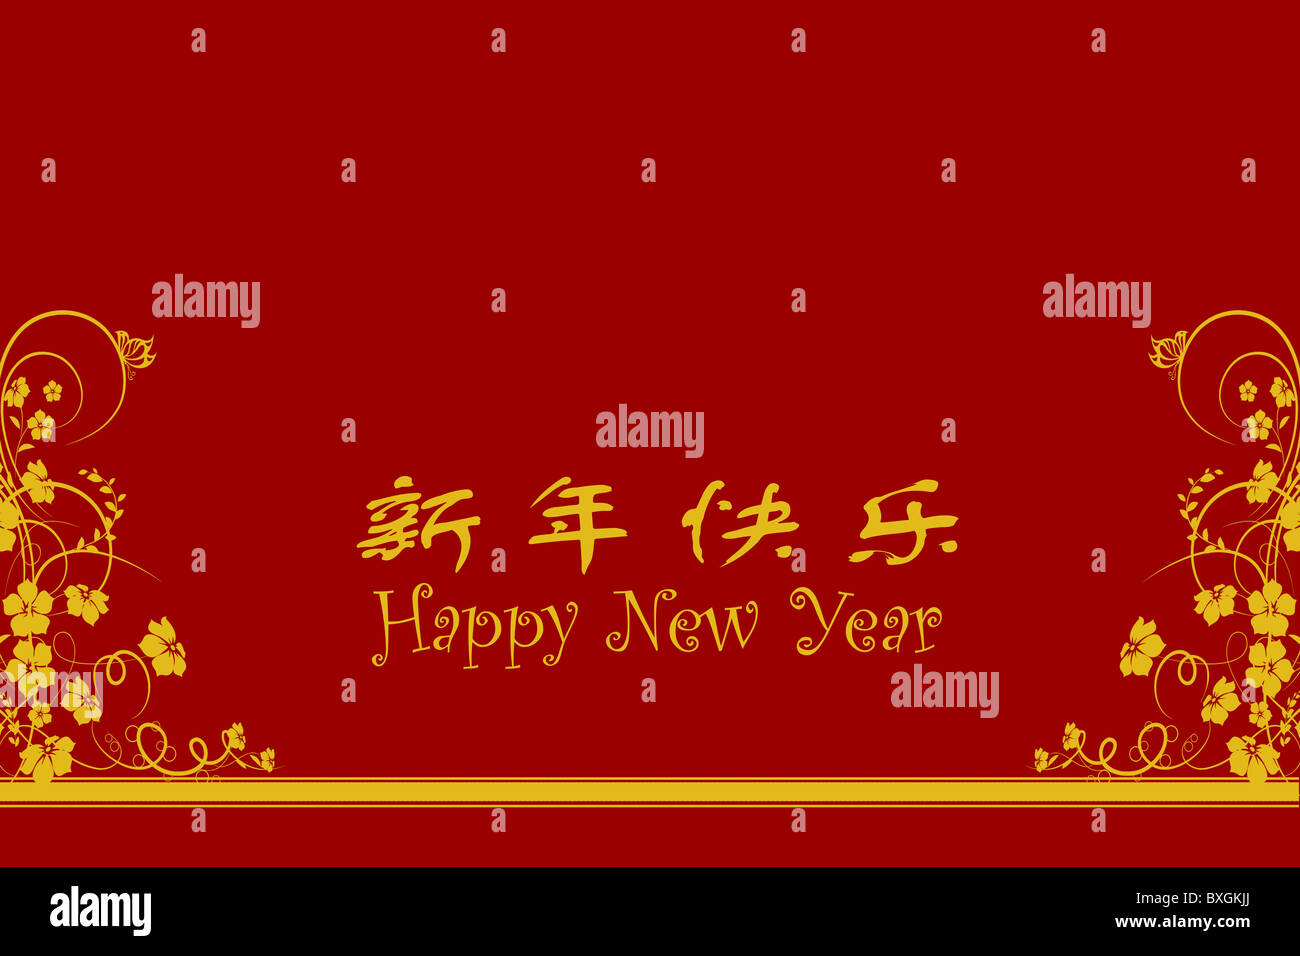 Chinese new year greeting card with chinese characters stock photo chinese new year greeting card with chinese characters kristyandbryce Gallery